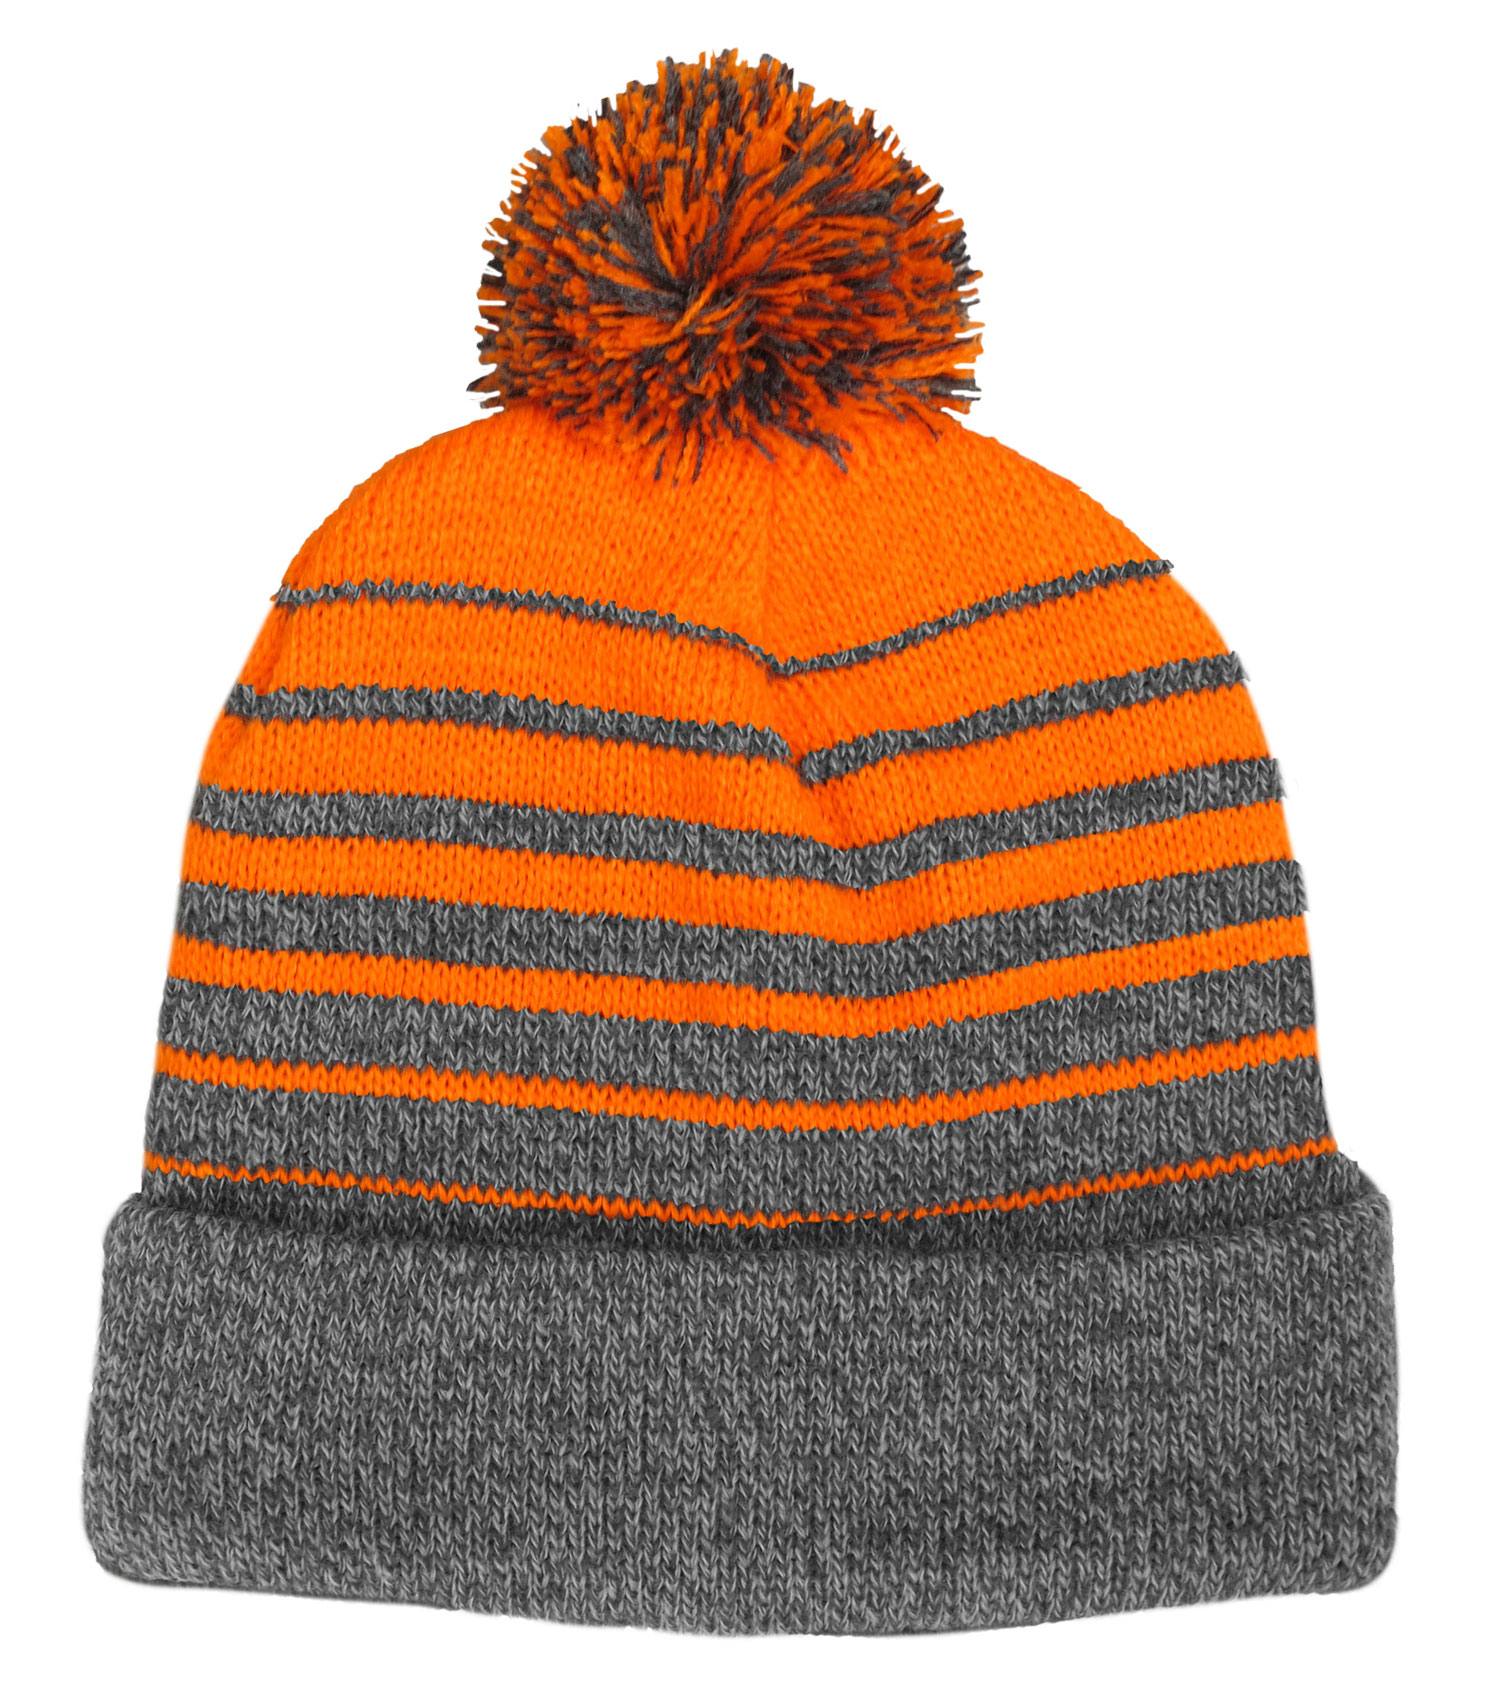 Gradient Beanie Made In USA